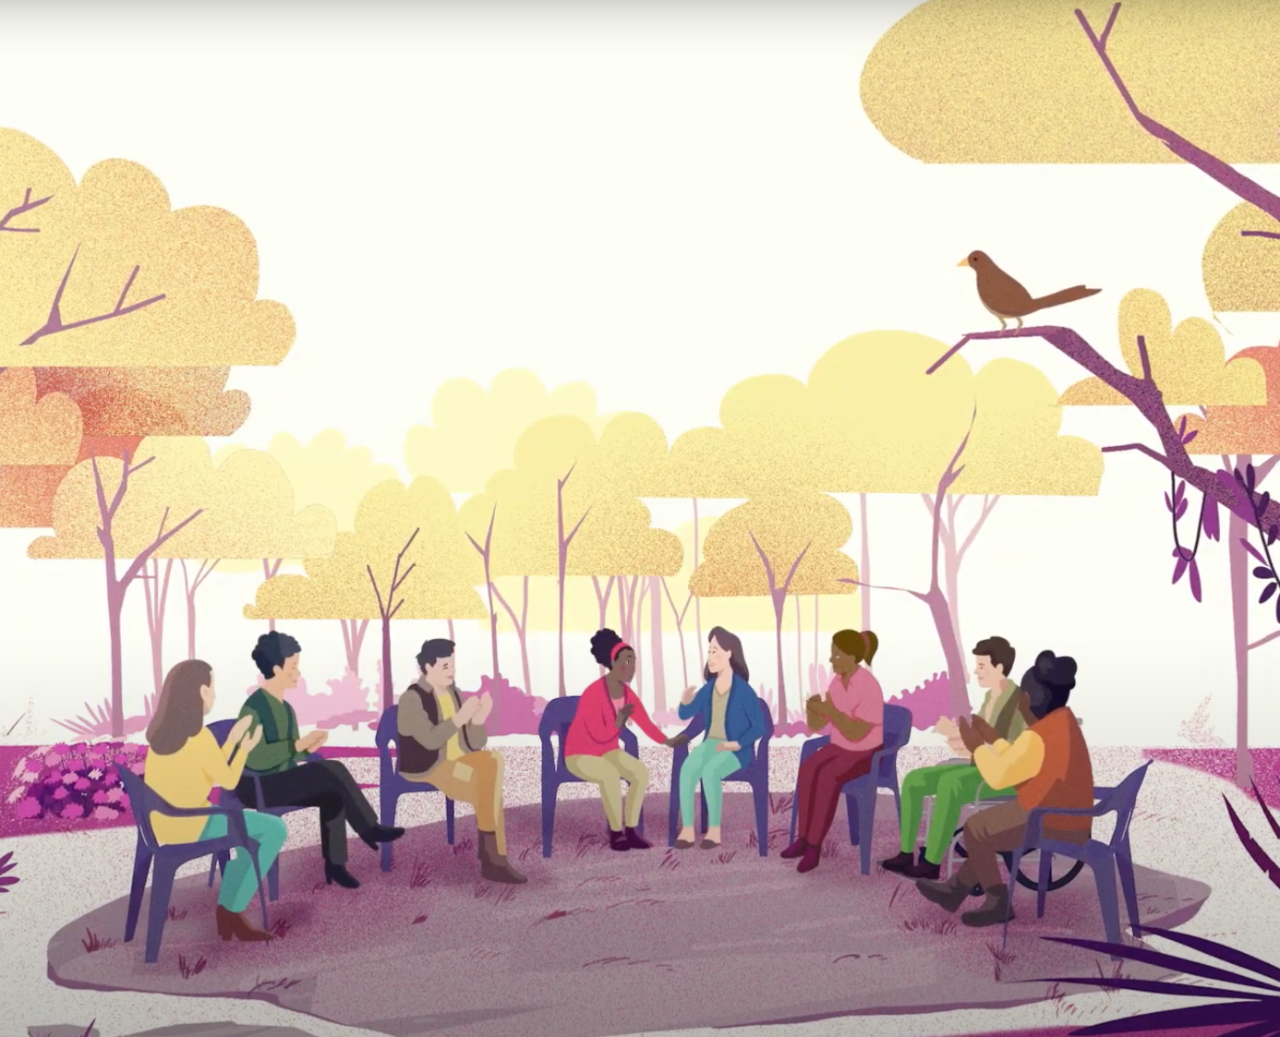 illustration of people gathering at a park